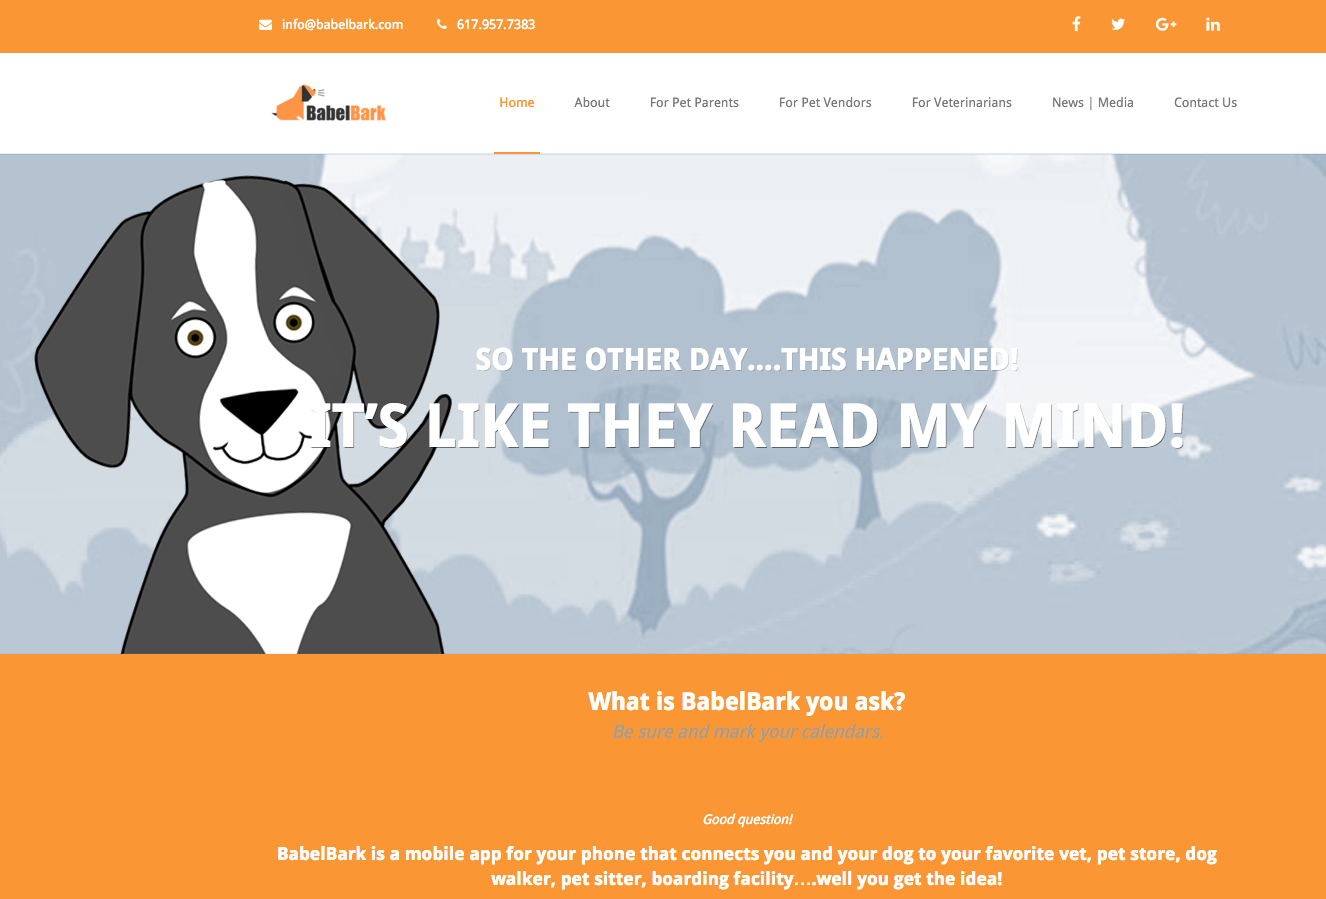 how-a-simple-idea-turned-into-a-pet-platform-with-thousands-of-users